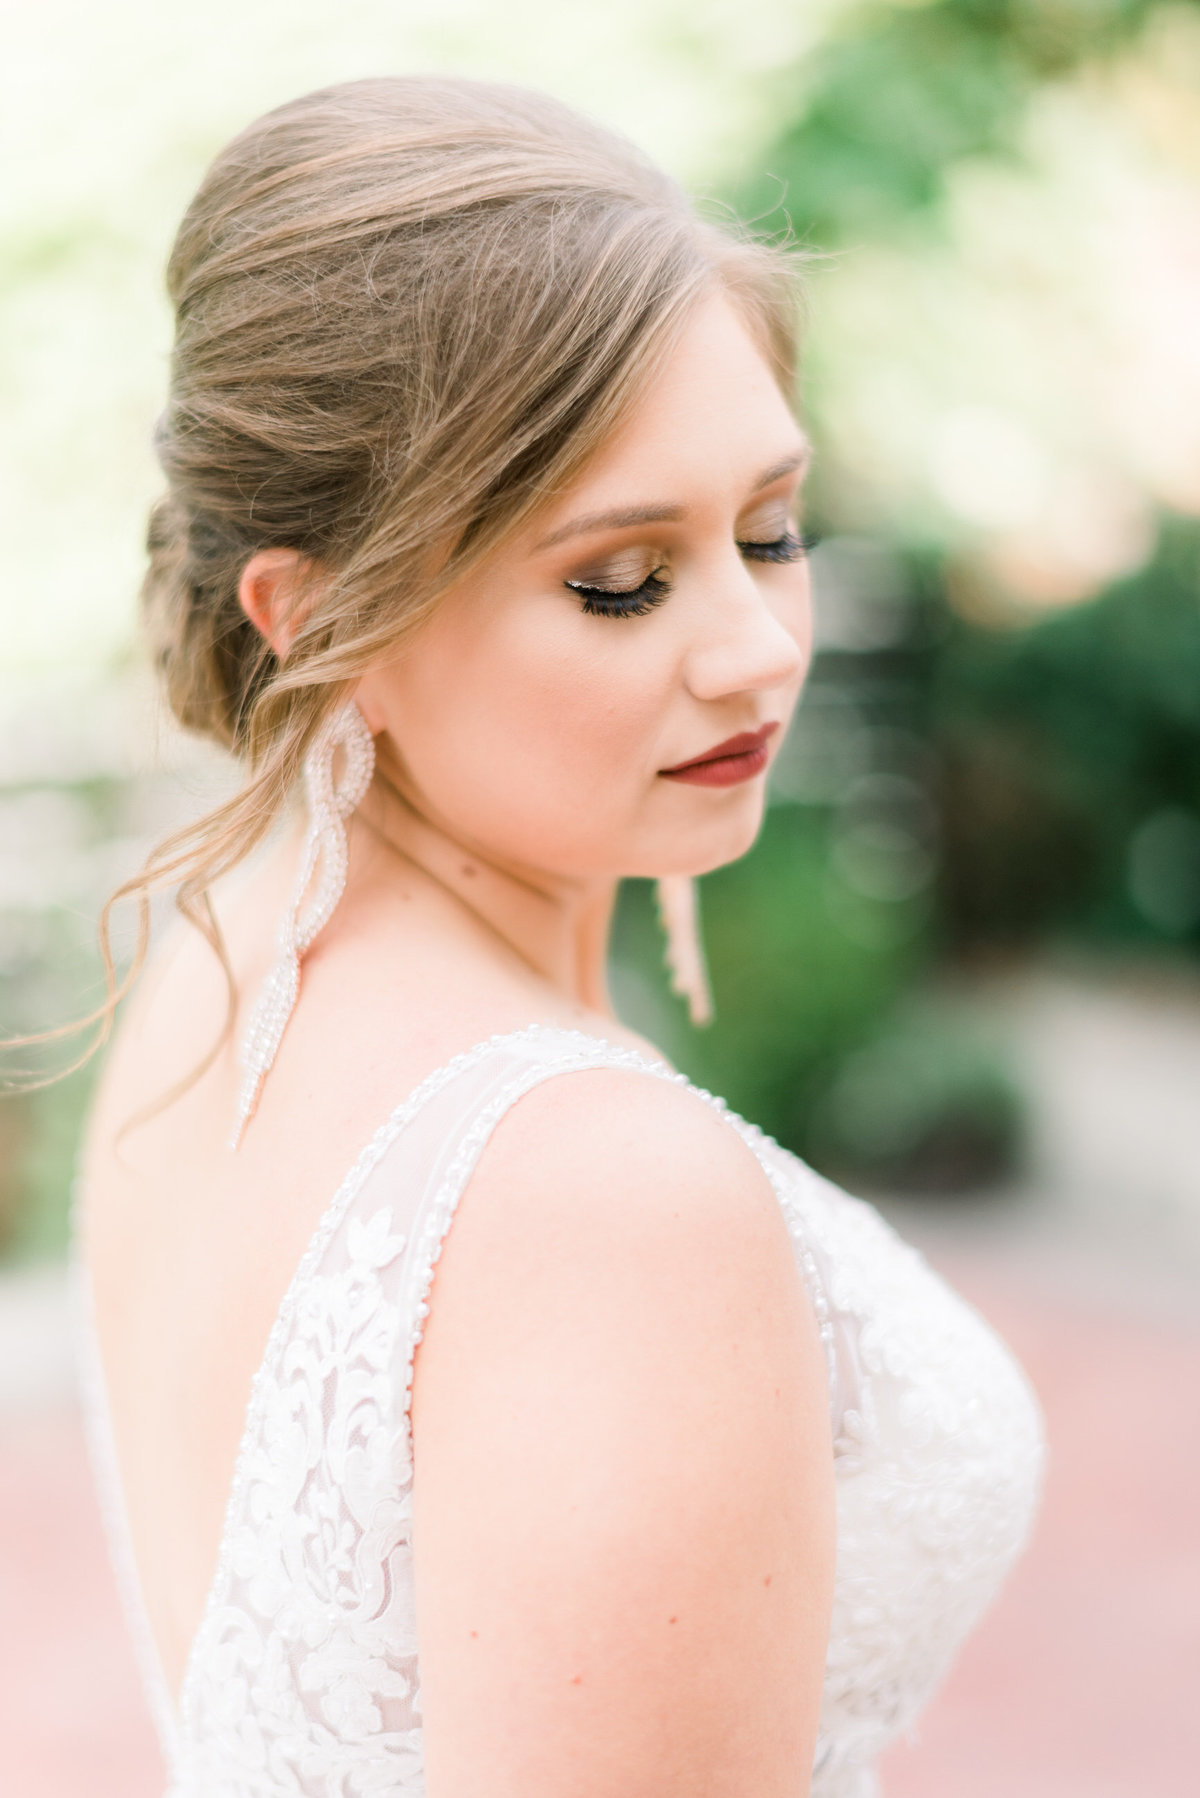 Bentonville-Wedding-Photographer-Riley-Hali-556